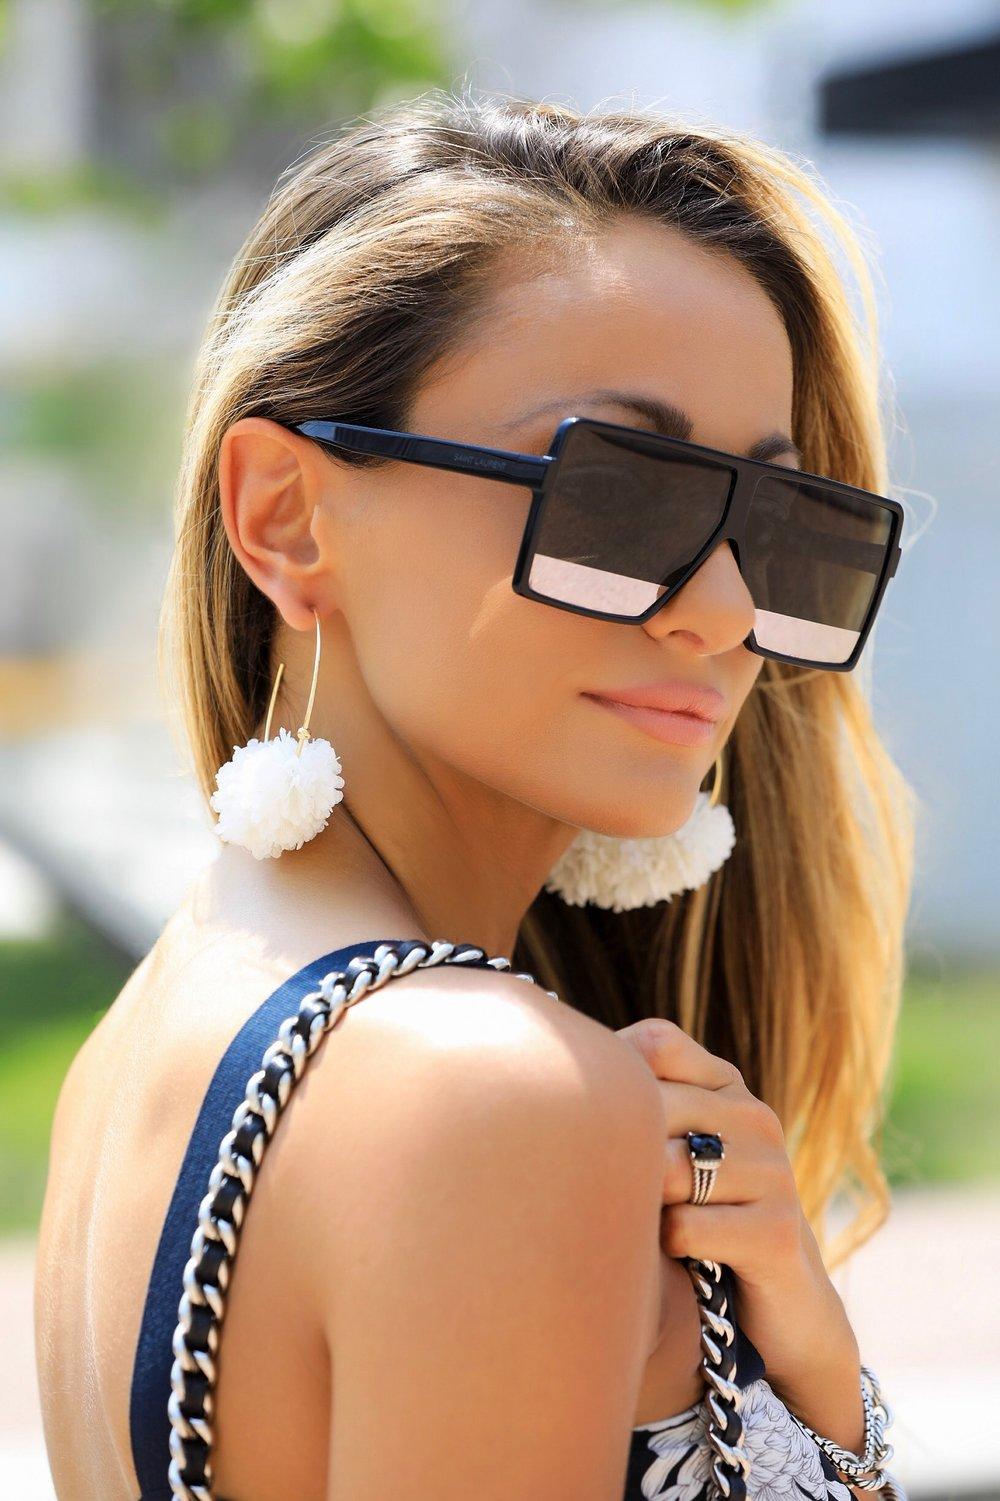 baublebar earrings and saint laurent sunglasses